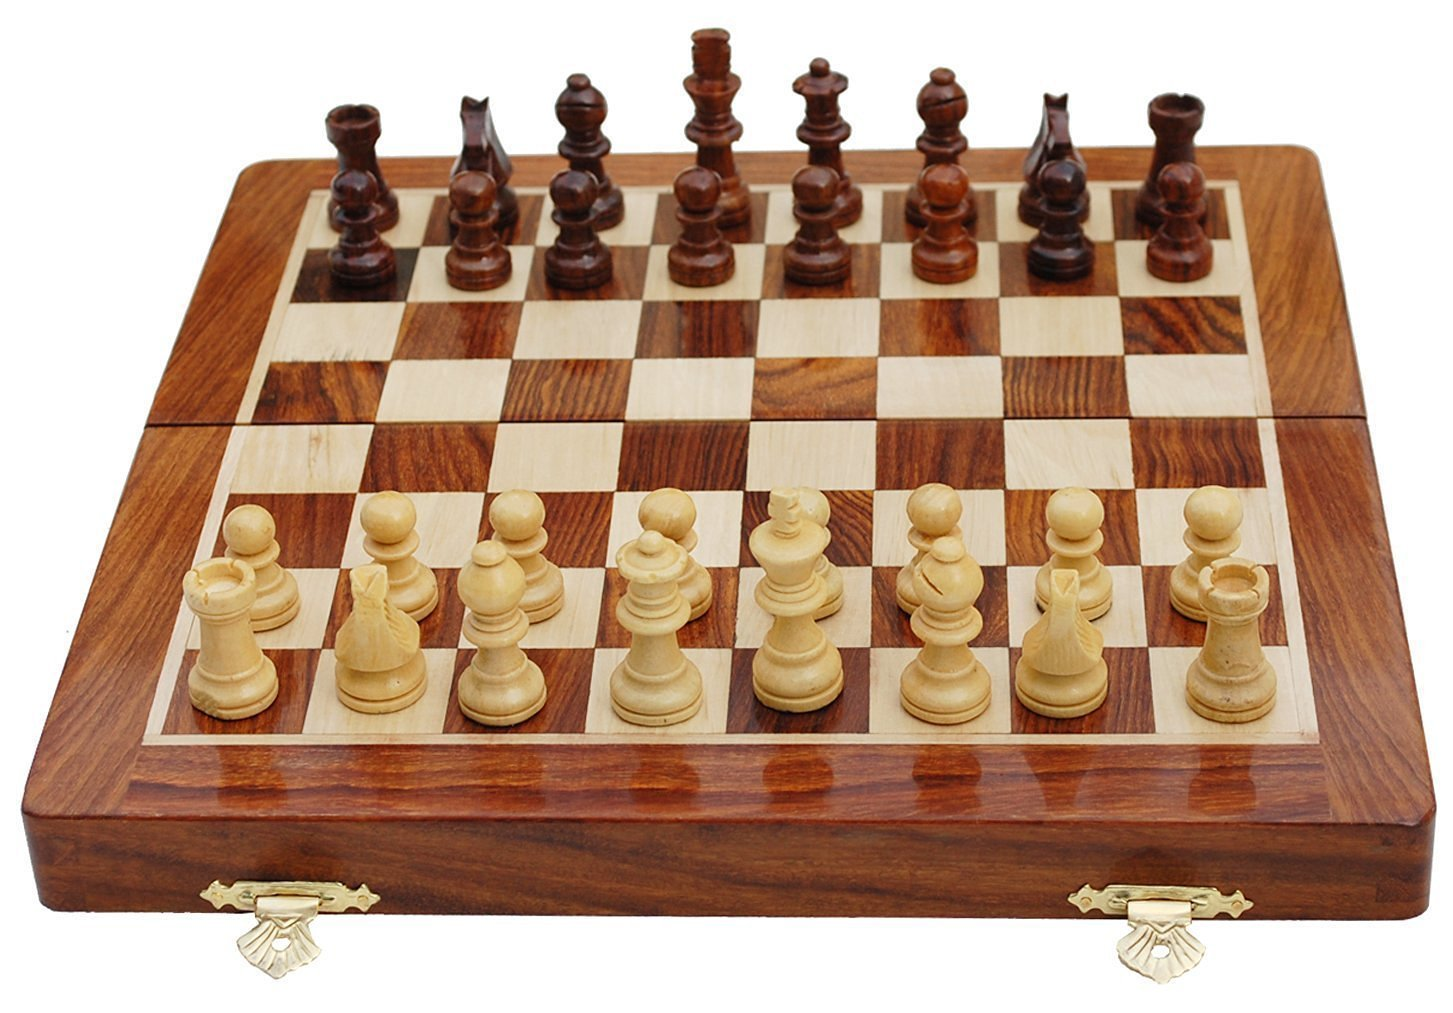 Best Chess Set Sale - BKRAFT4U 10 x 10'' Rosewood Travel Chess Game Board - Premium Handmade Wooden Foldable Magnetic Chess Game Board with Storage Slots, 10 inch. Gifts from India. by BKRAFT4U (Image #2)